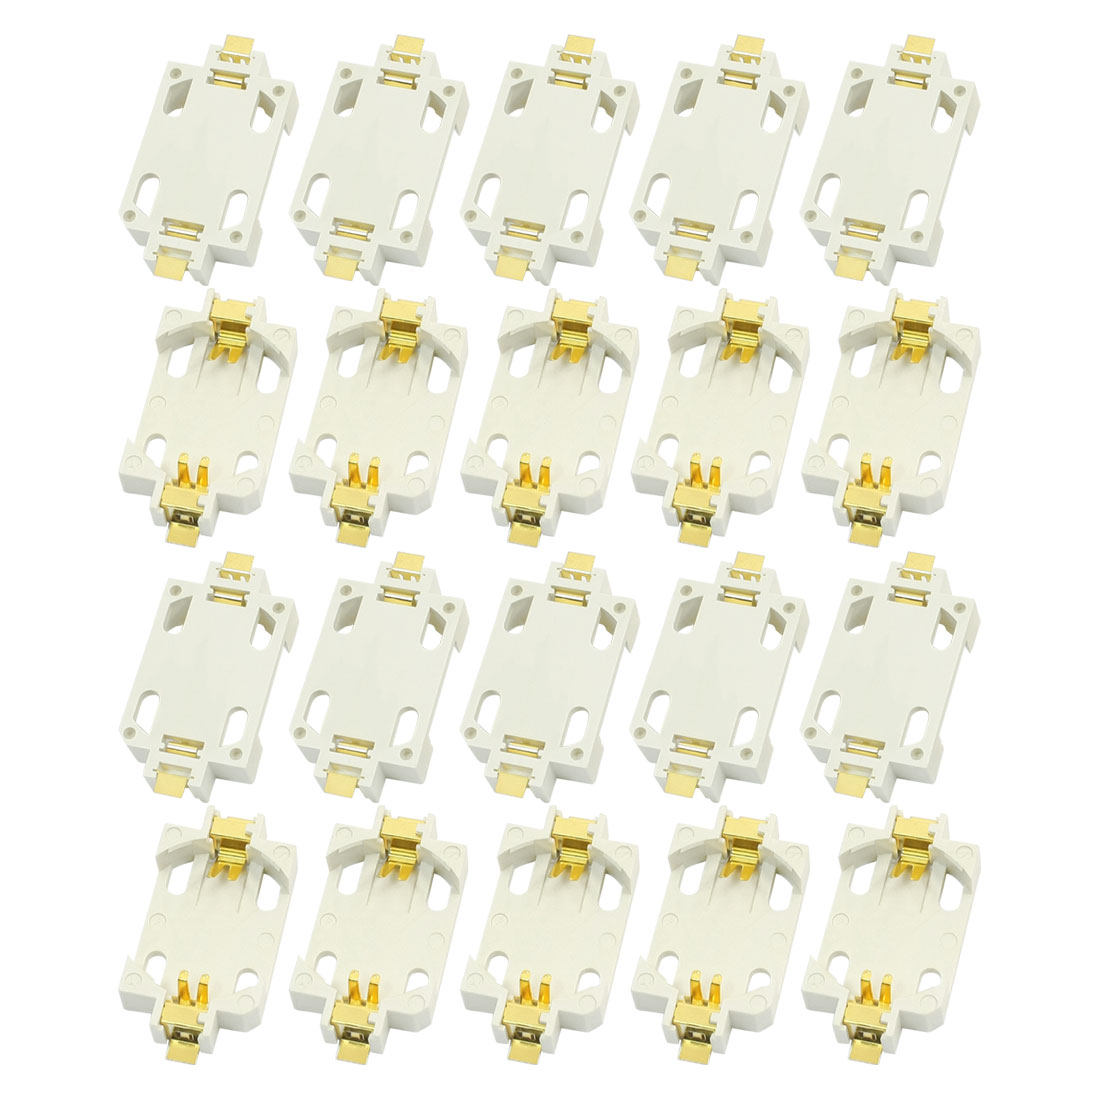 20 PCS White Shell SMD SMT Type CR2032 Cell Button Battery Holder Socket Case Container